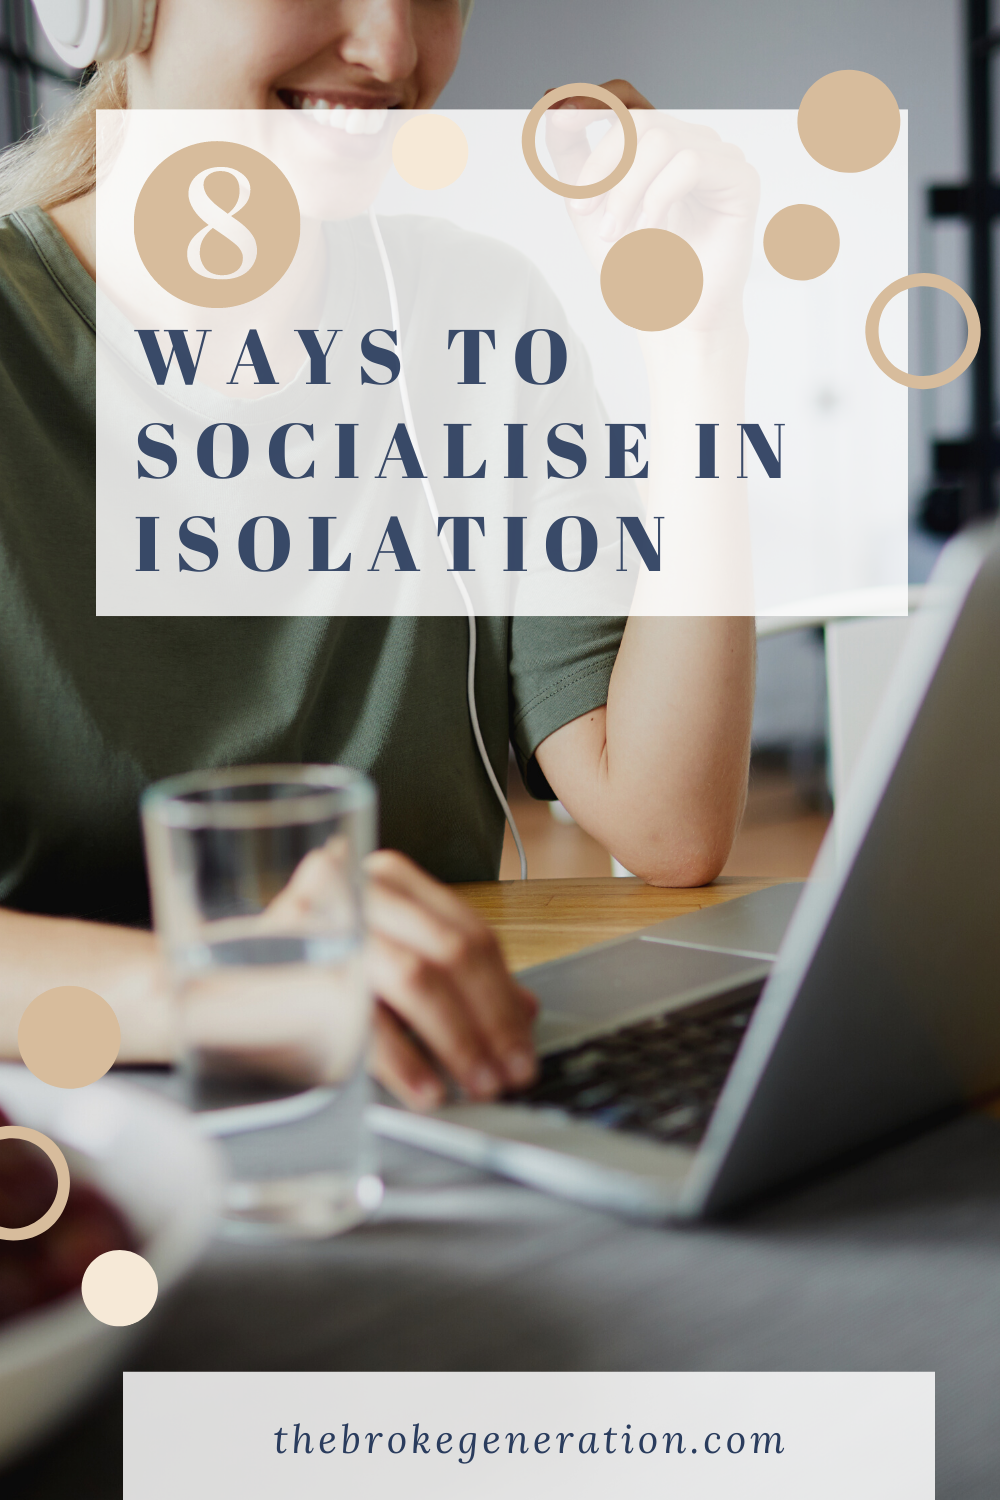 8 Ways to Socialise While in Isolation